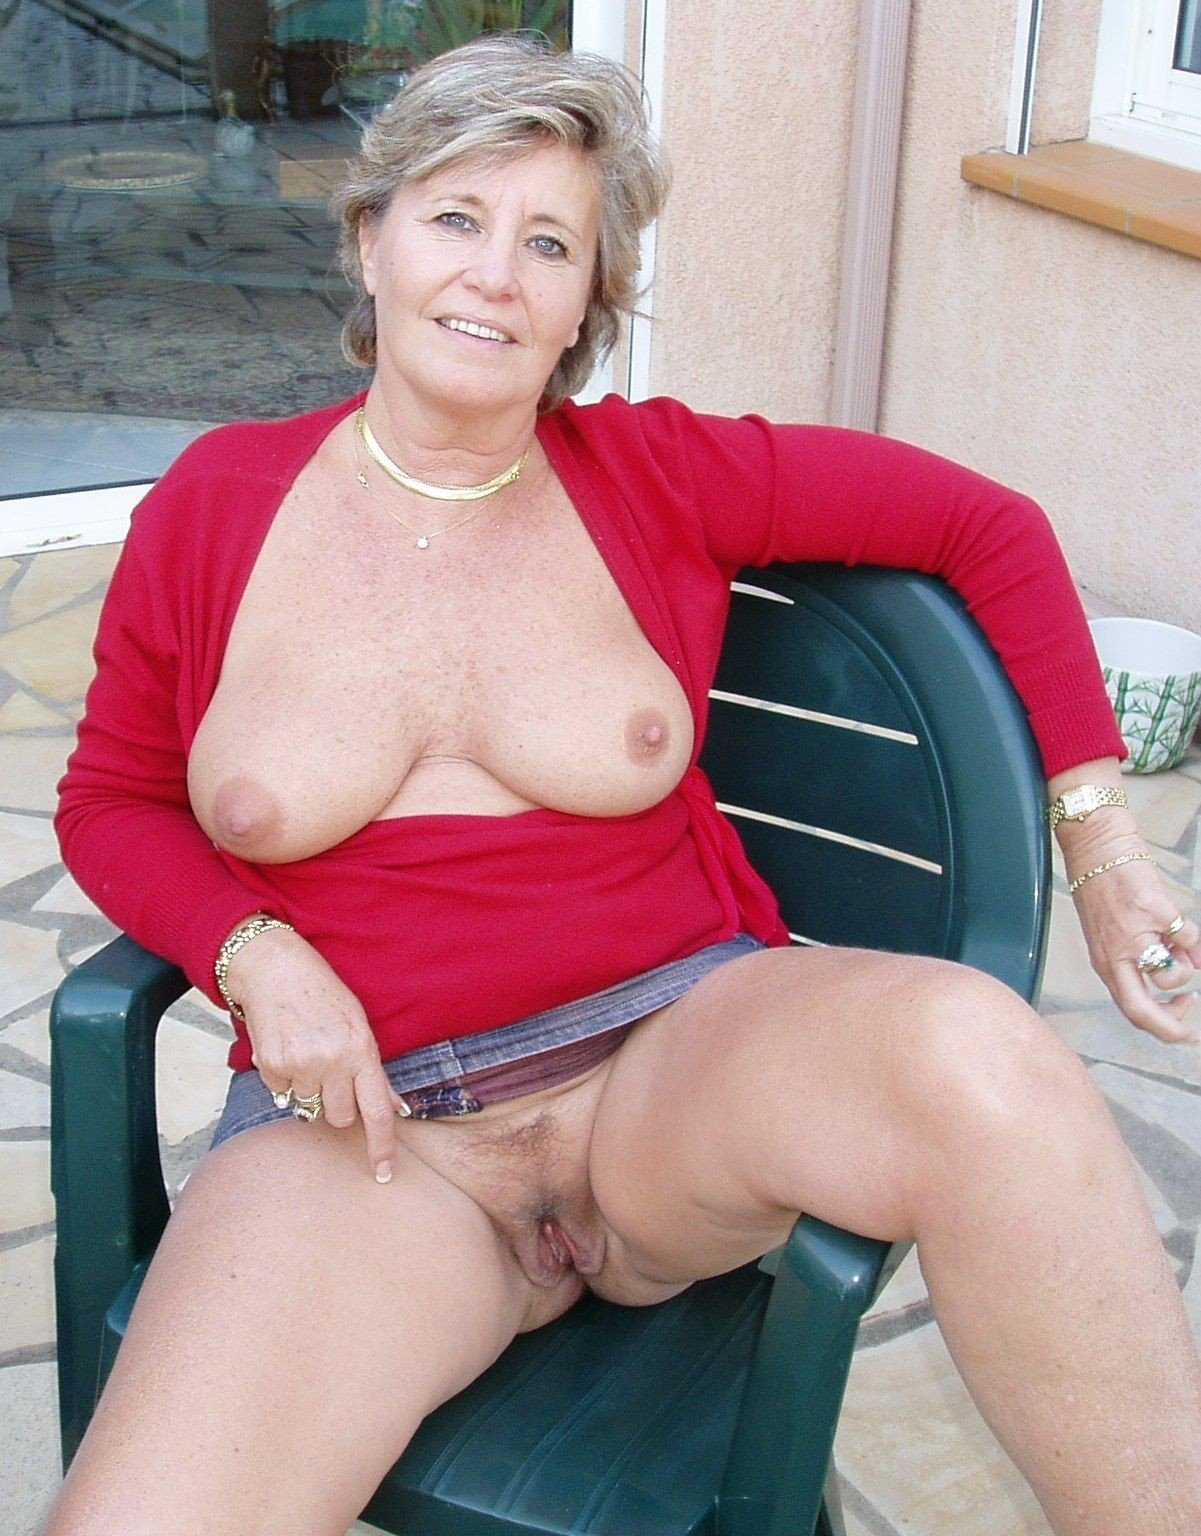 Pin on sexy older women